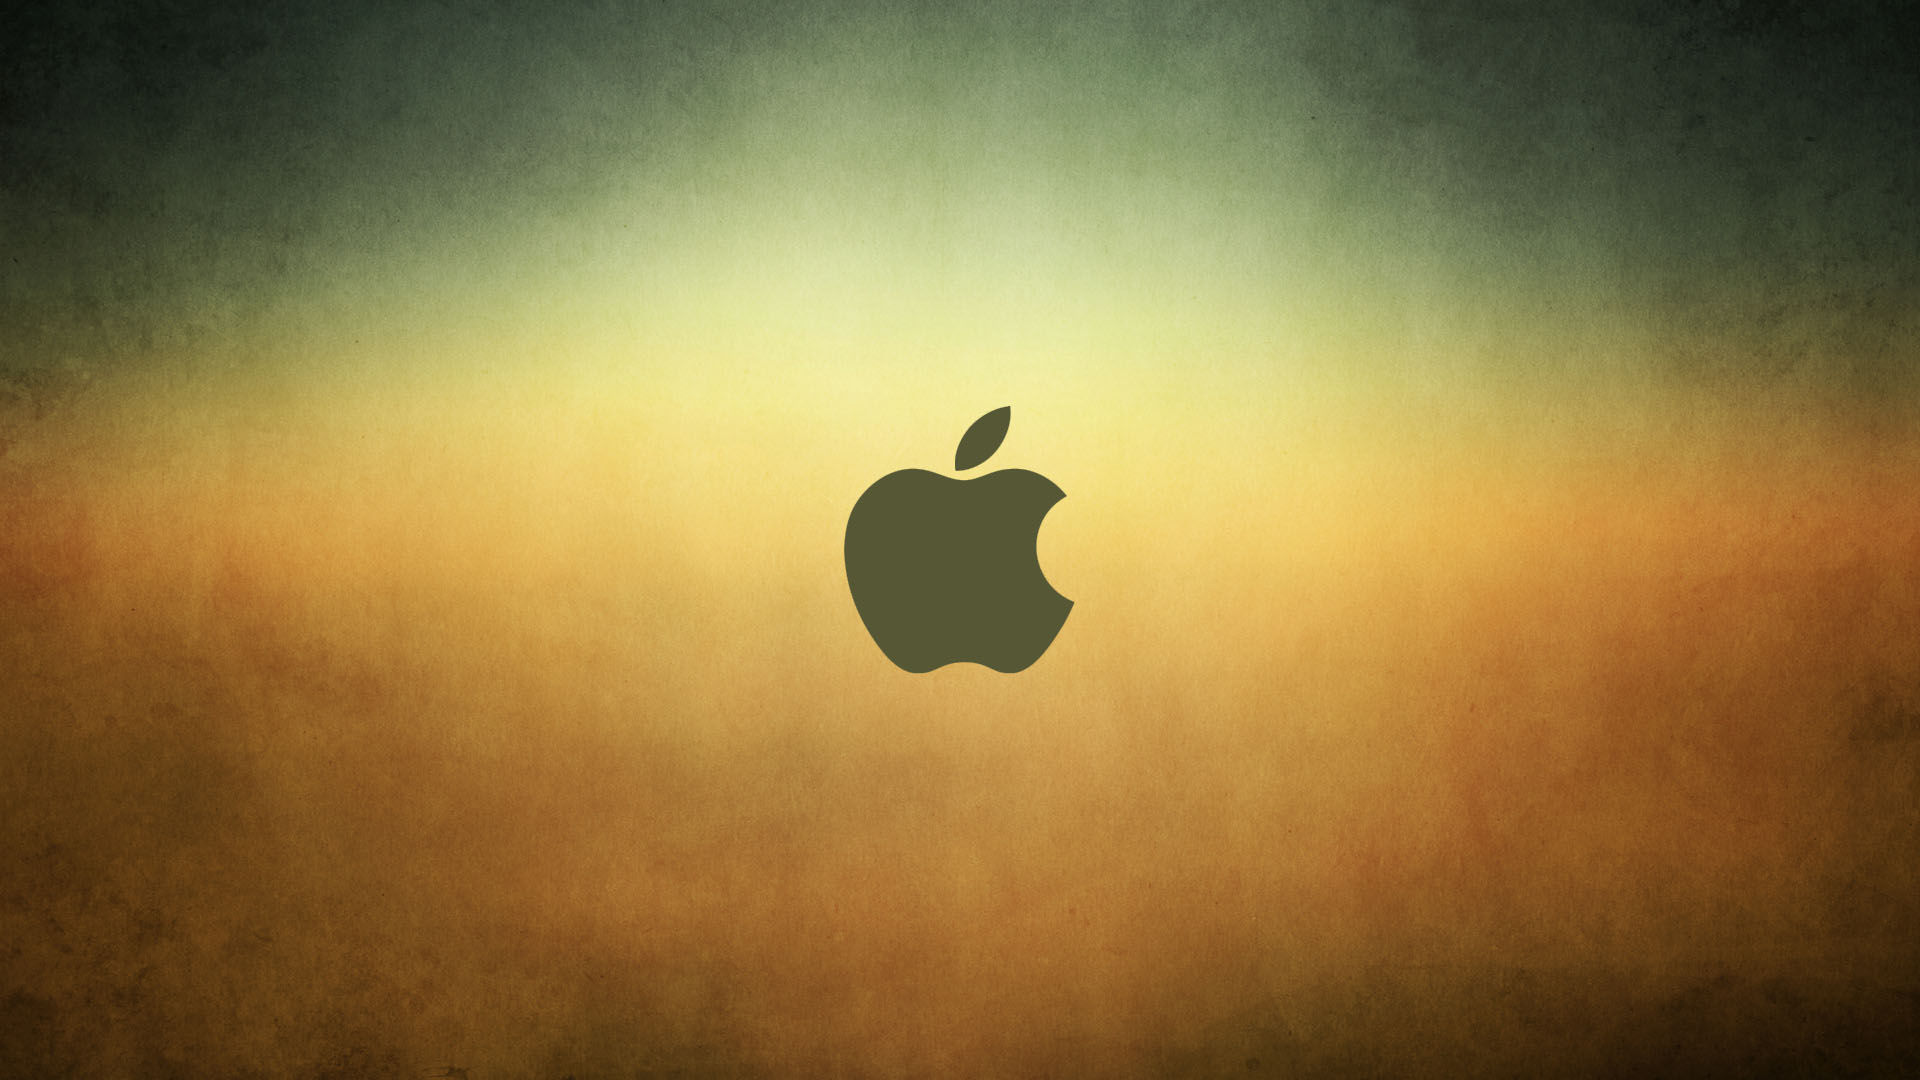 Wallpapers for mac os